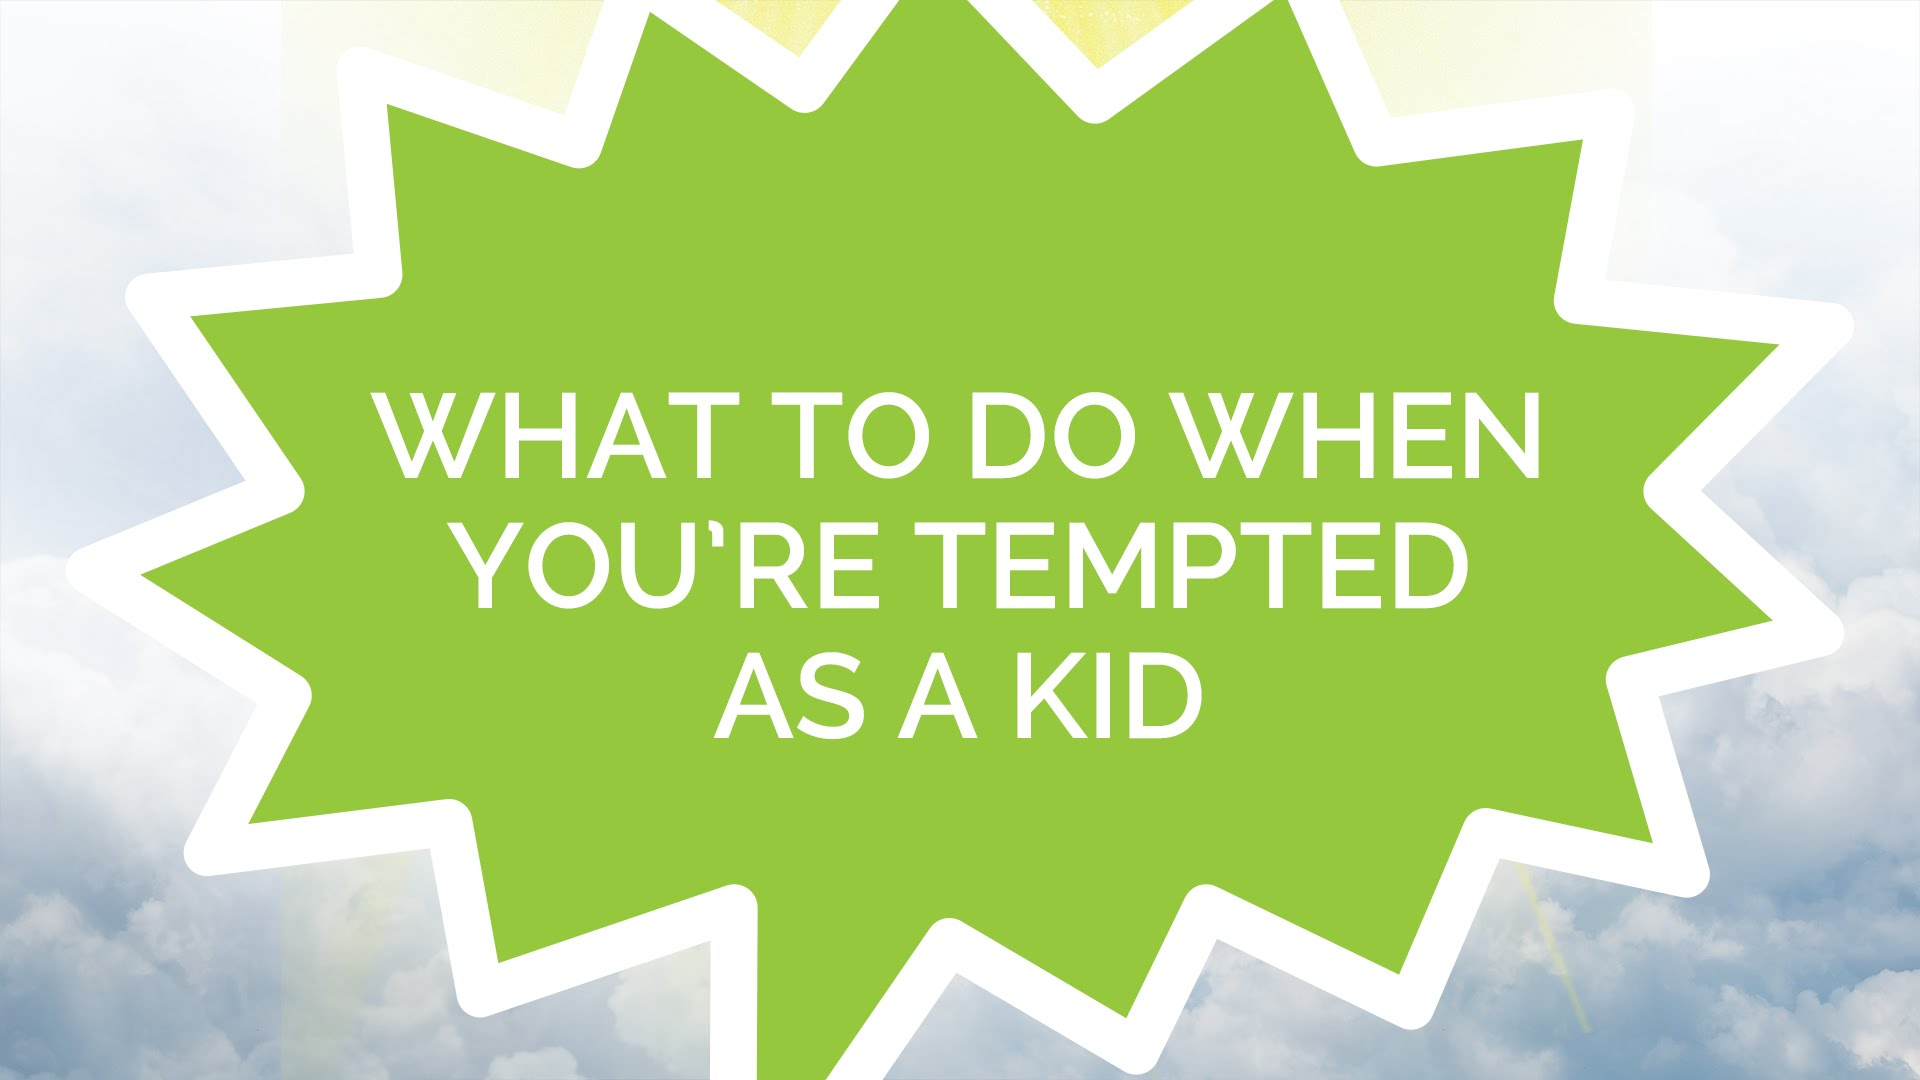 What to Do When You're Tempted as a Kid